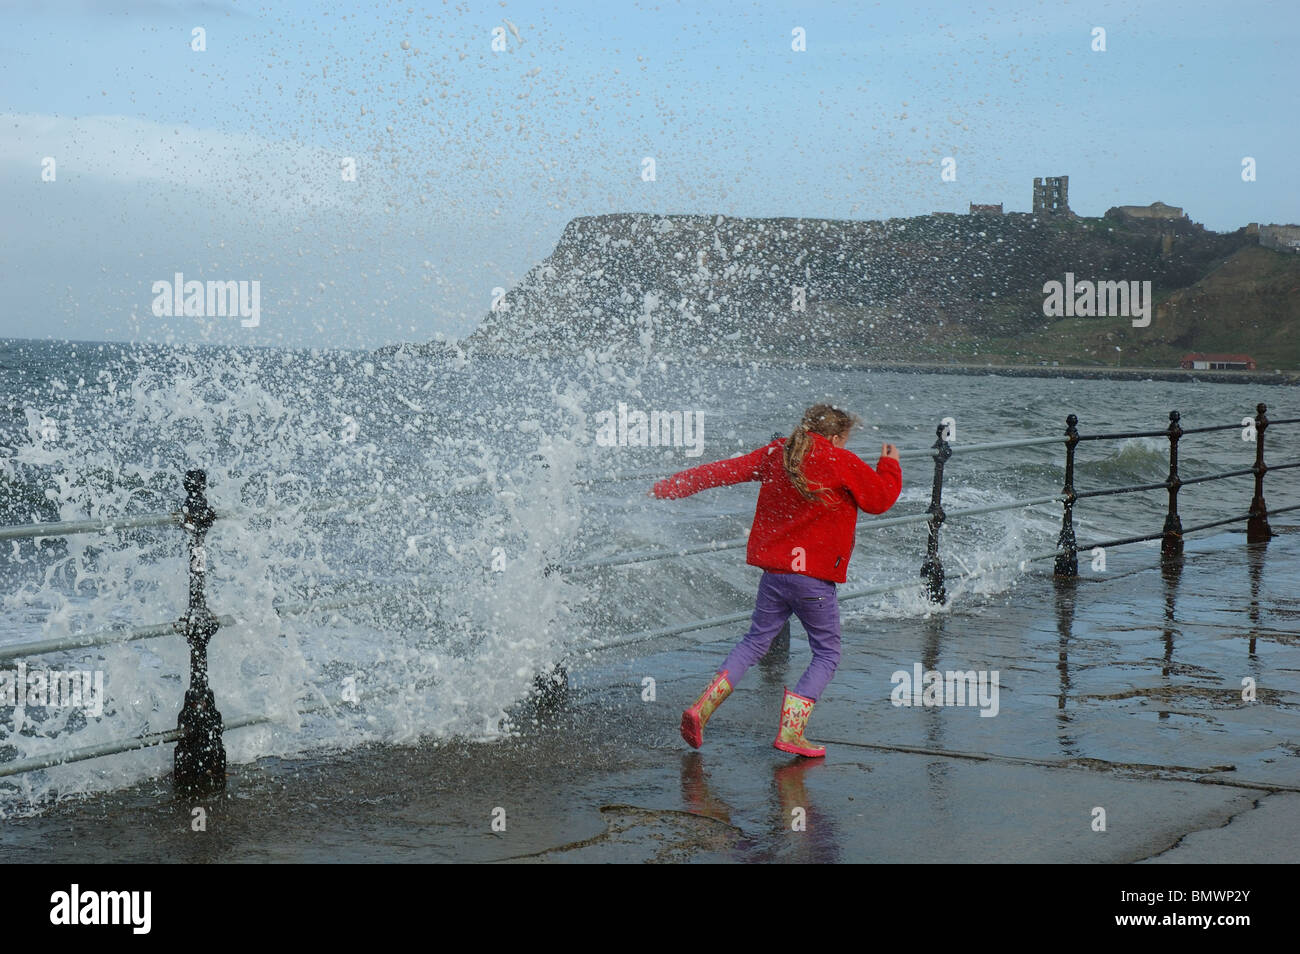 young girl plays daredevil as waves crash over the seafront, Royal Albert Drive, Scarborough, North Yorkshire, England, - Stock Image